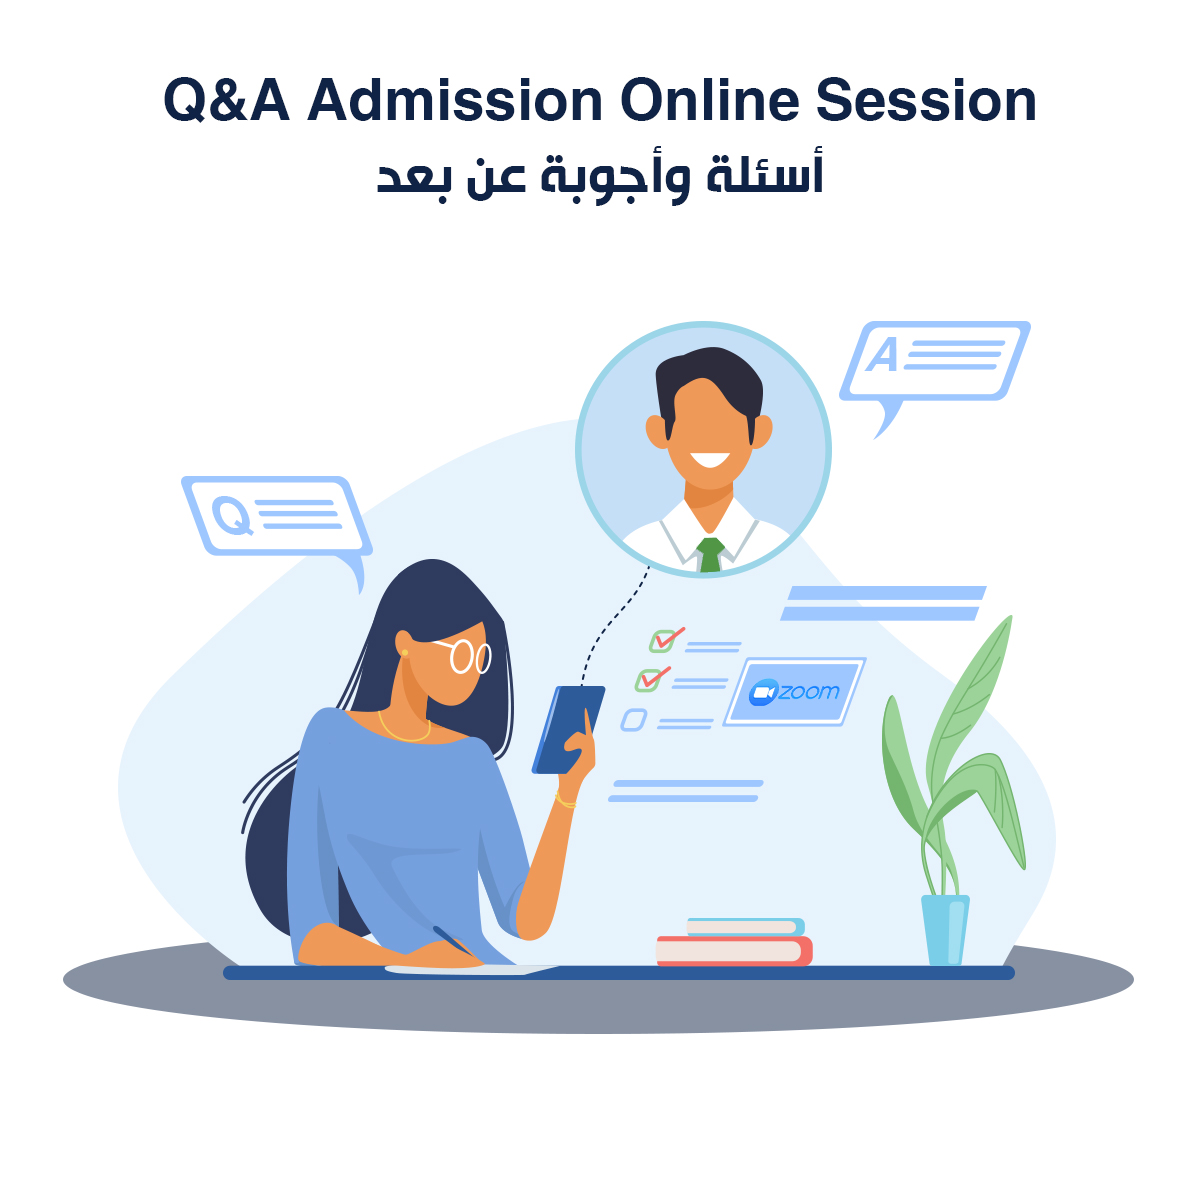 Q&A <strong>Admission Online Session</strong><br /> أسئلة وأجوبة عن بعد